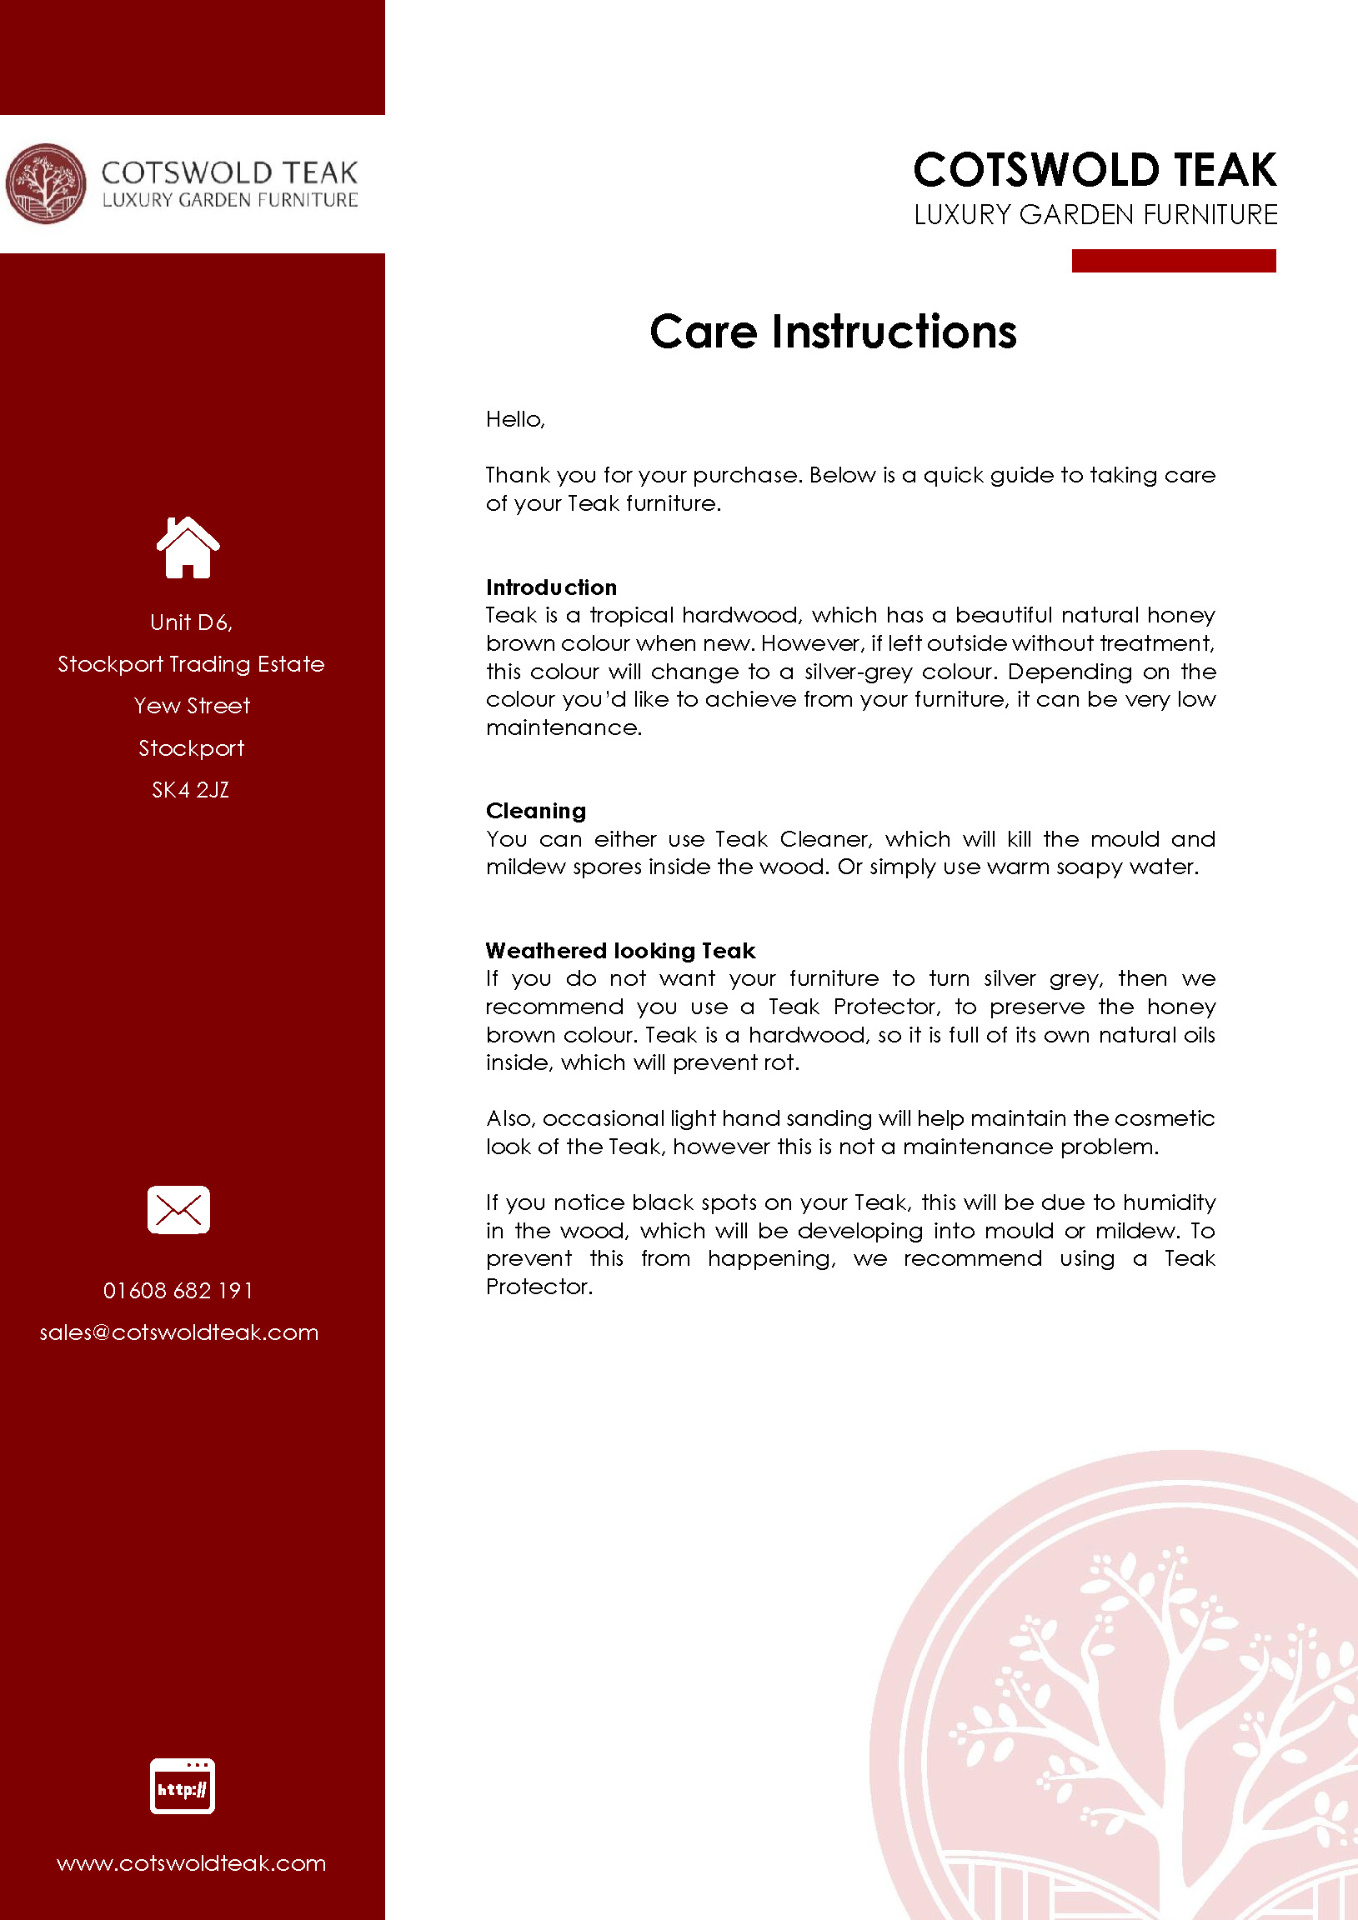 cotswold-teak-care-instructions.jpg